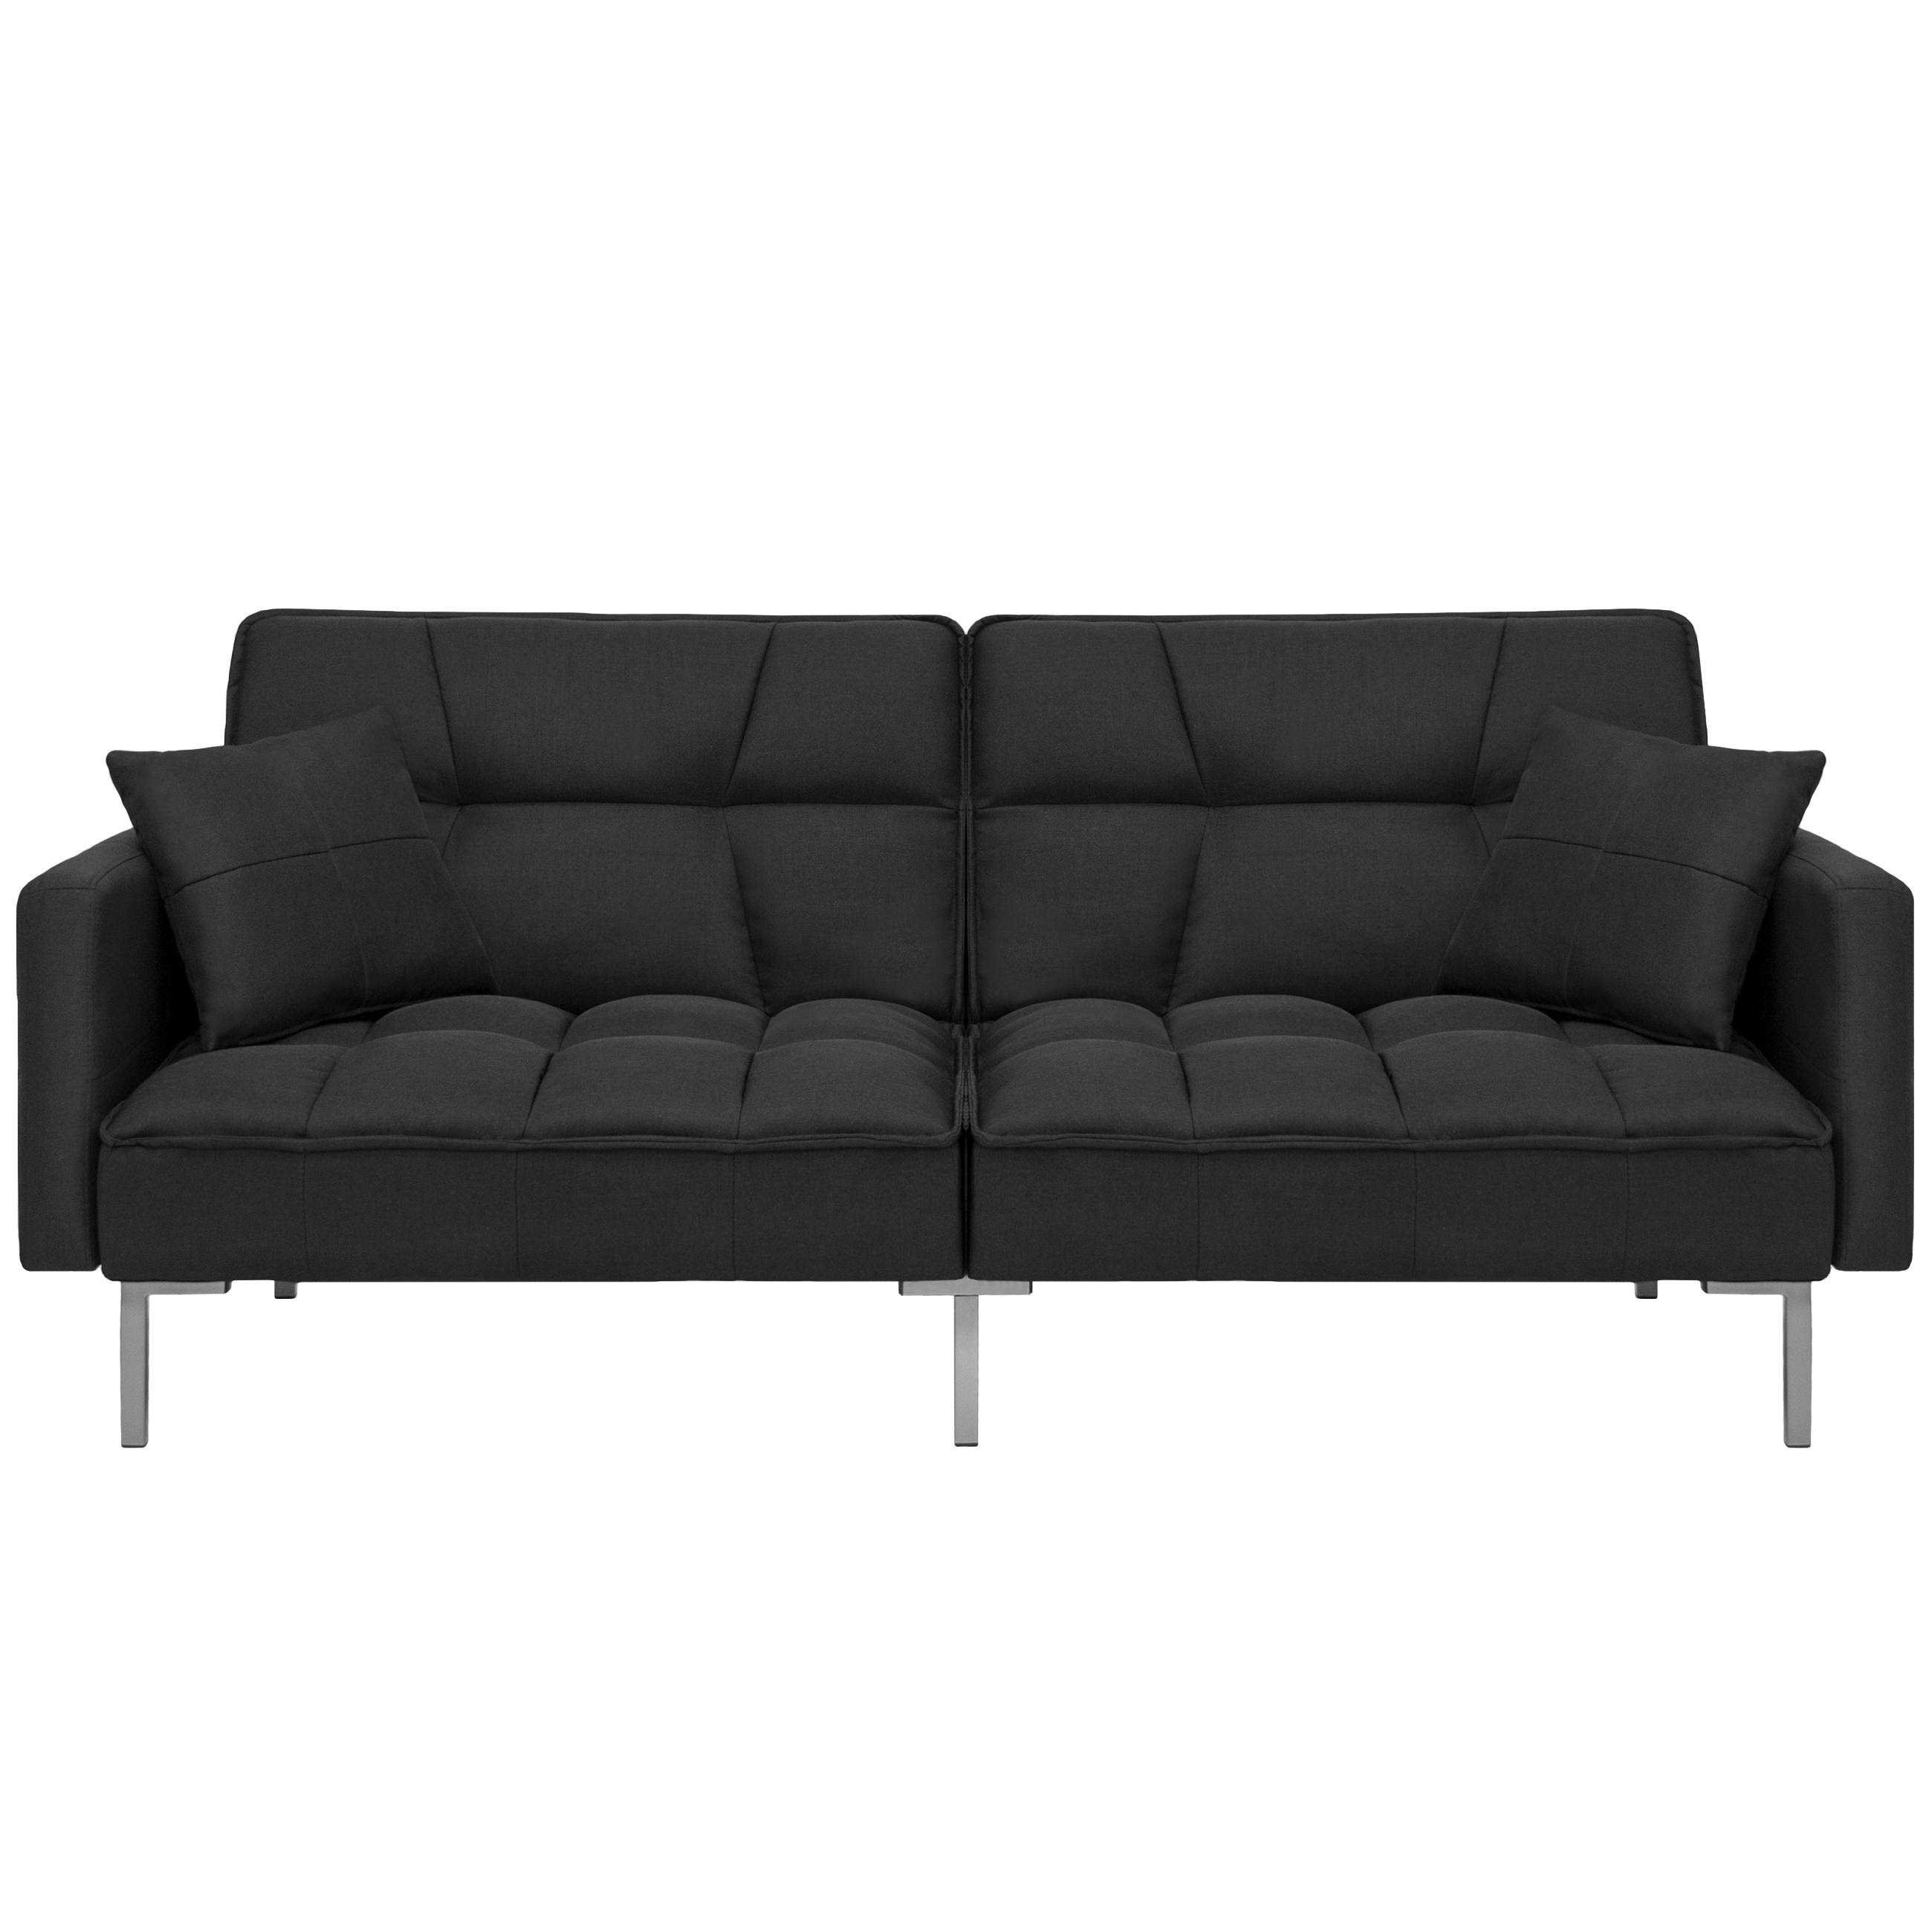 Best Choice Products Convertible Futon Linen Tufted Split Back Couch w  Pillows Black by Best Choice Products